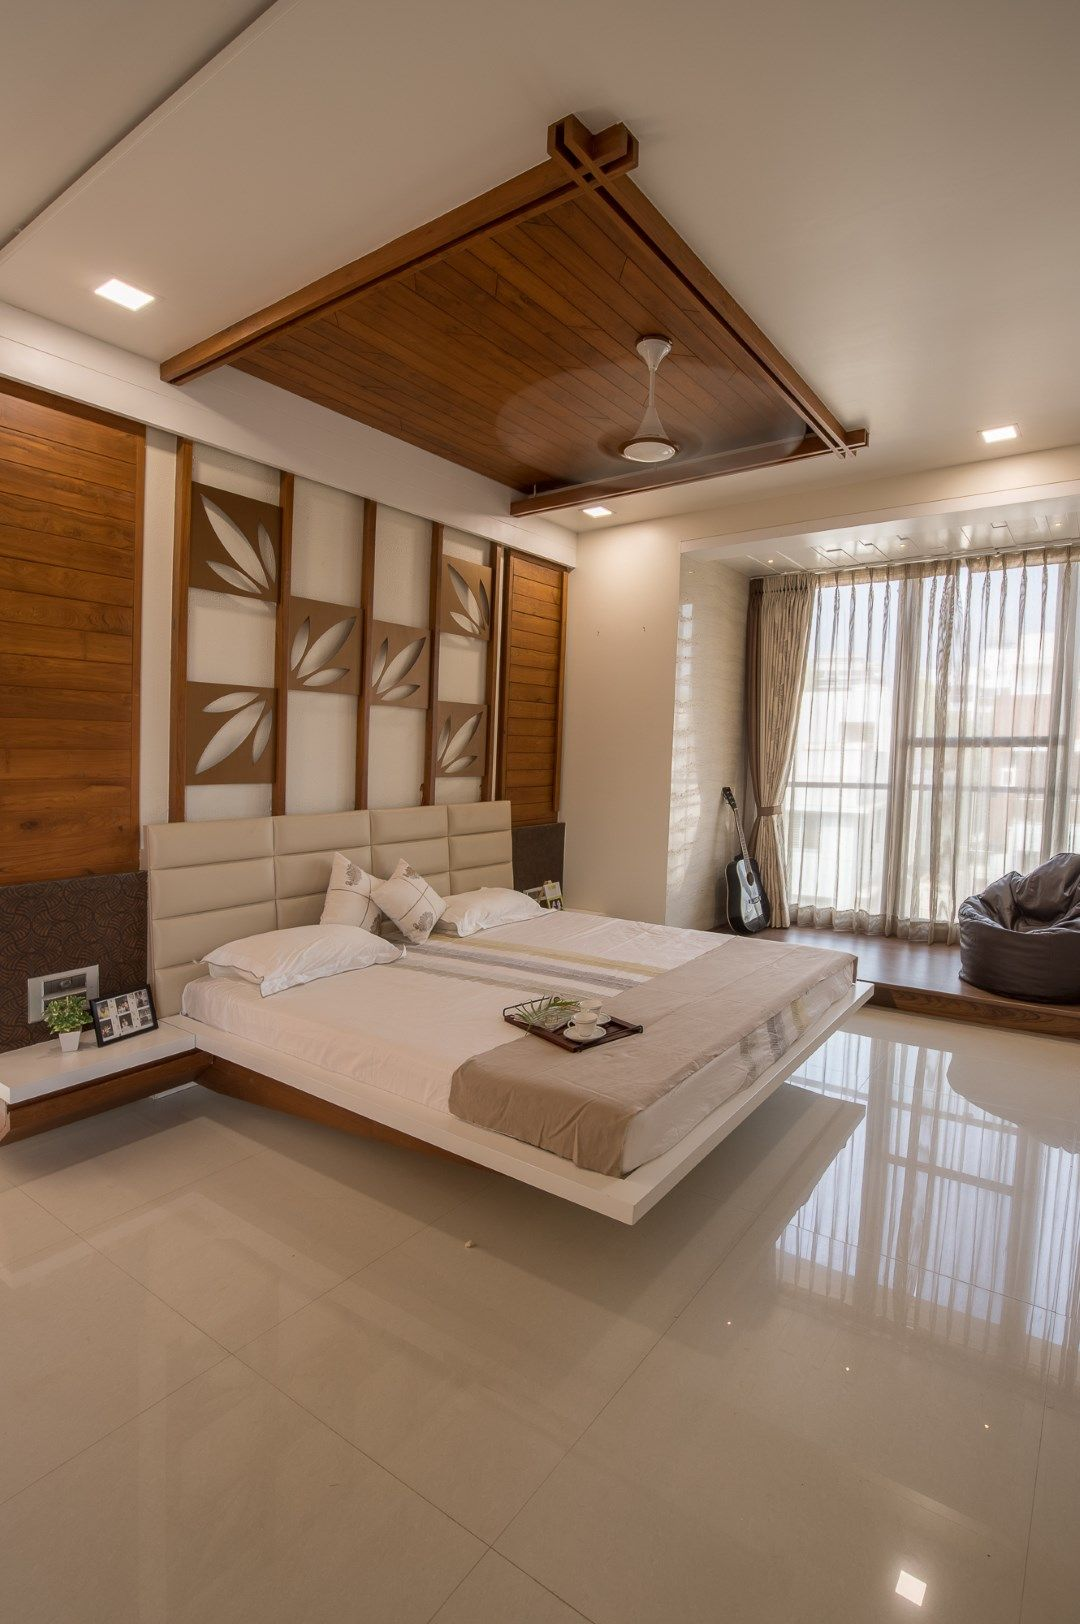 The Contemporary Cubic House Bedroom Design Ideas